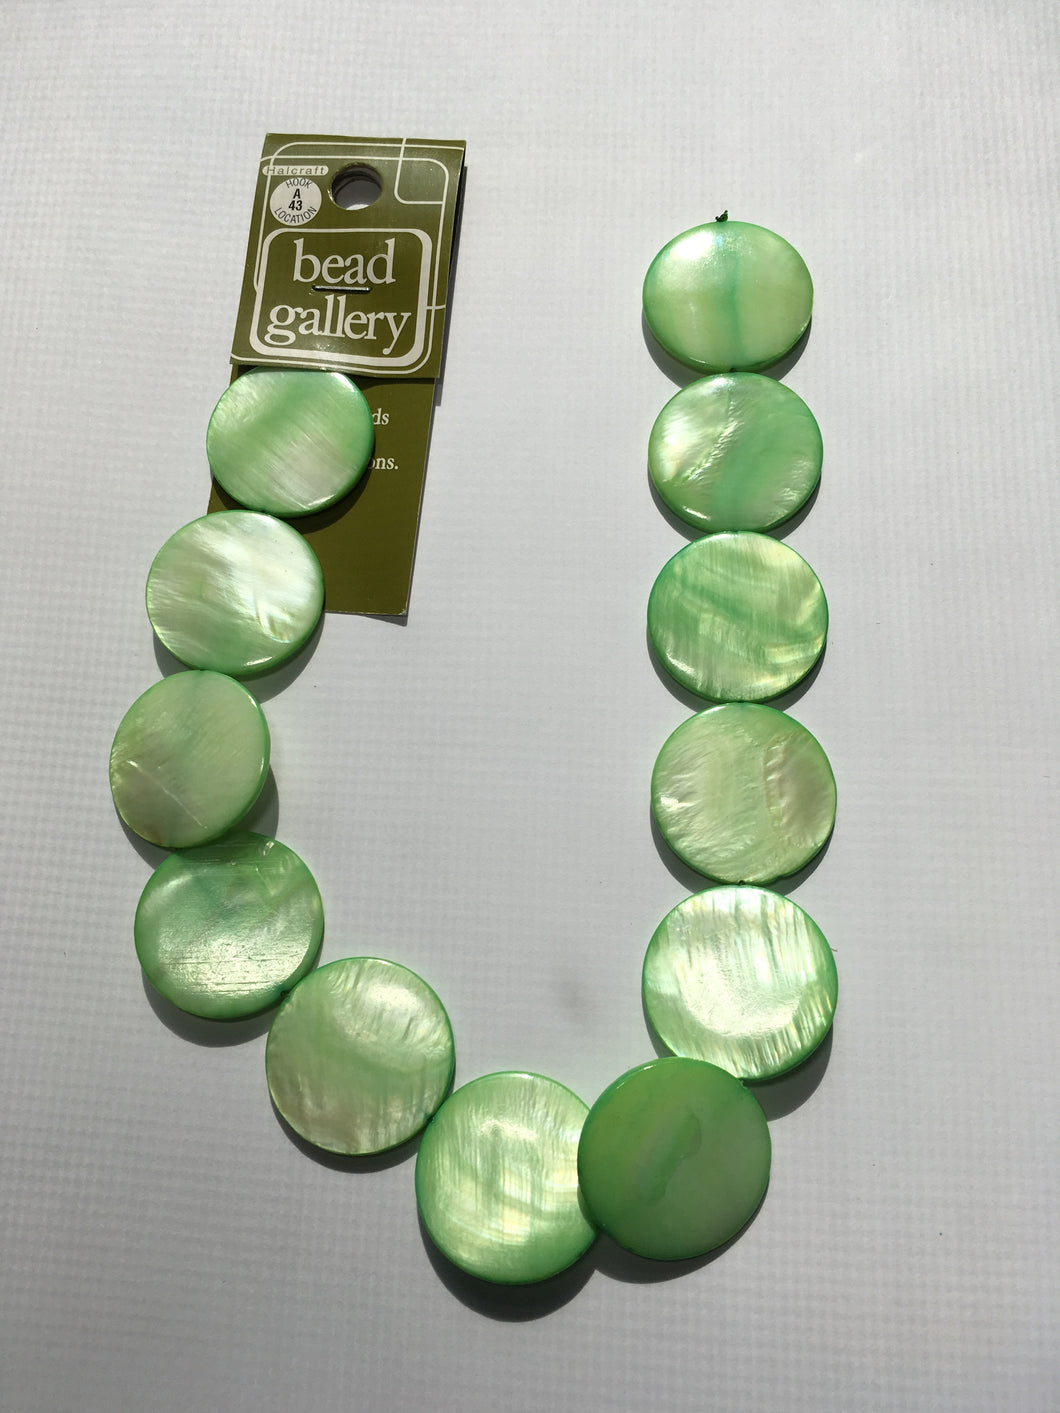 Bead Gallery Peridot Green Glass Lentil Beads, 25 mm - 12 Beads